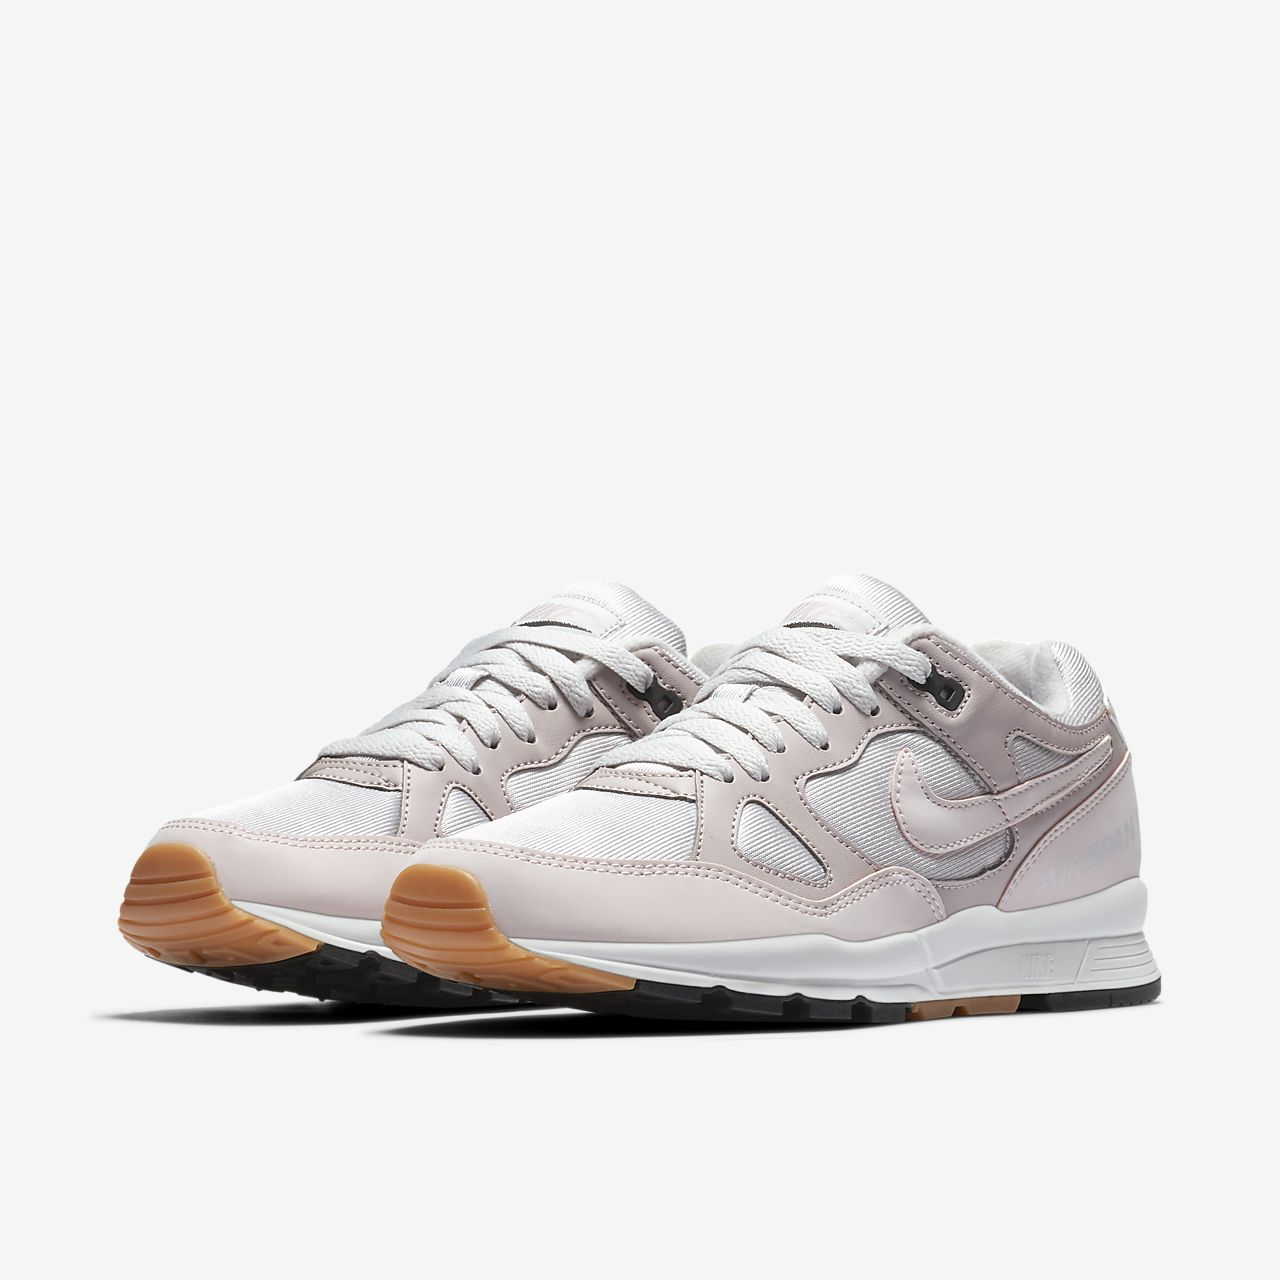 917580958c3ba Nike Air Span II Women's Shoe. Nike.com GB